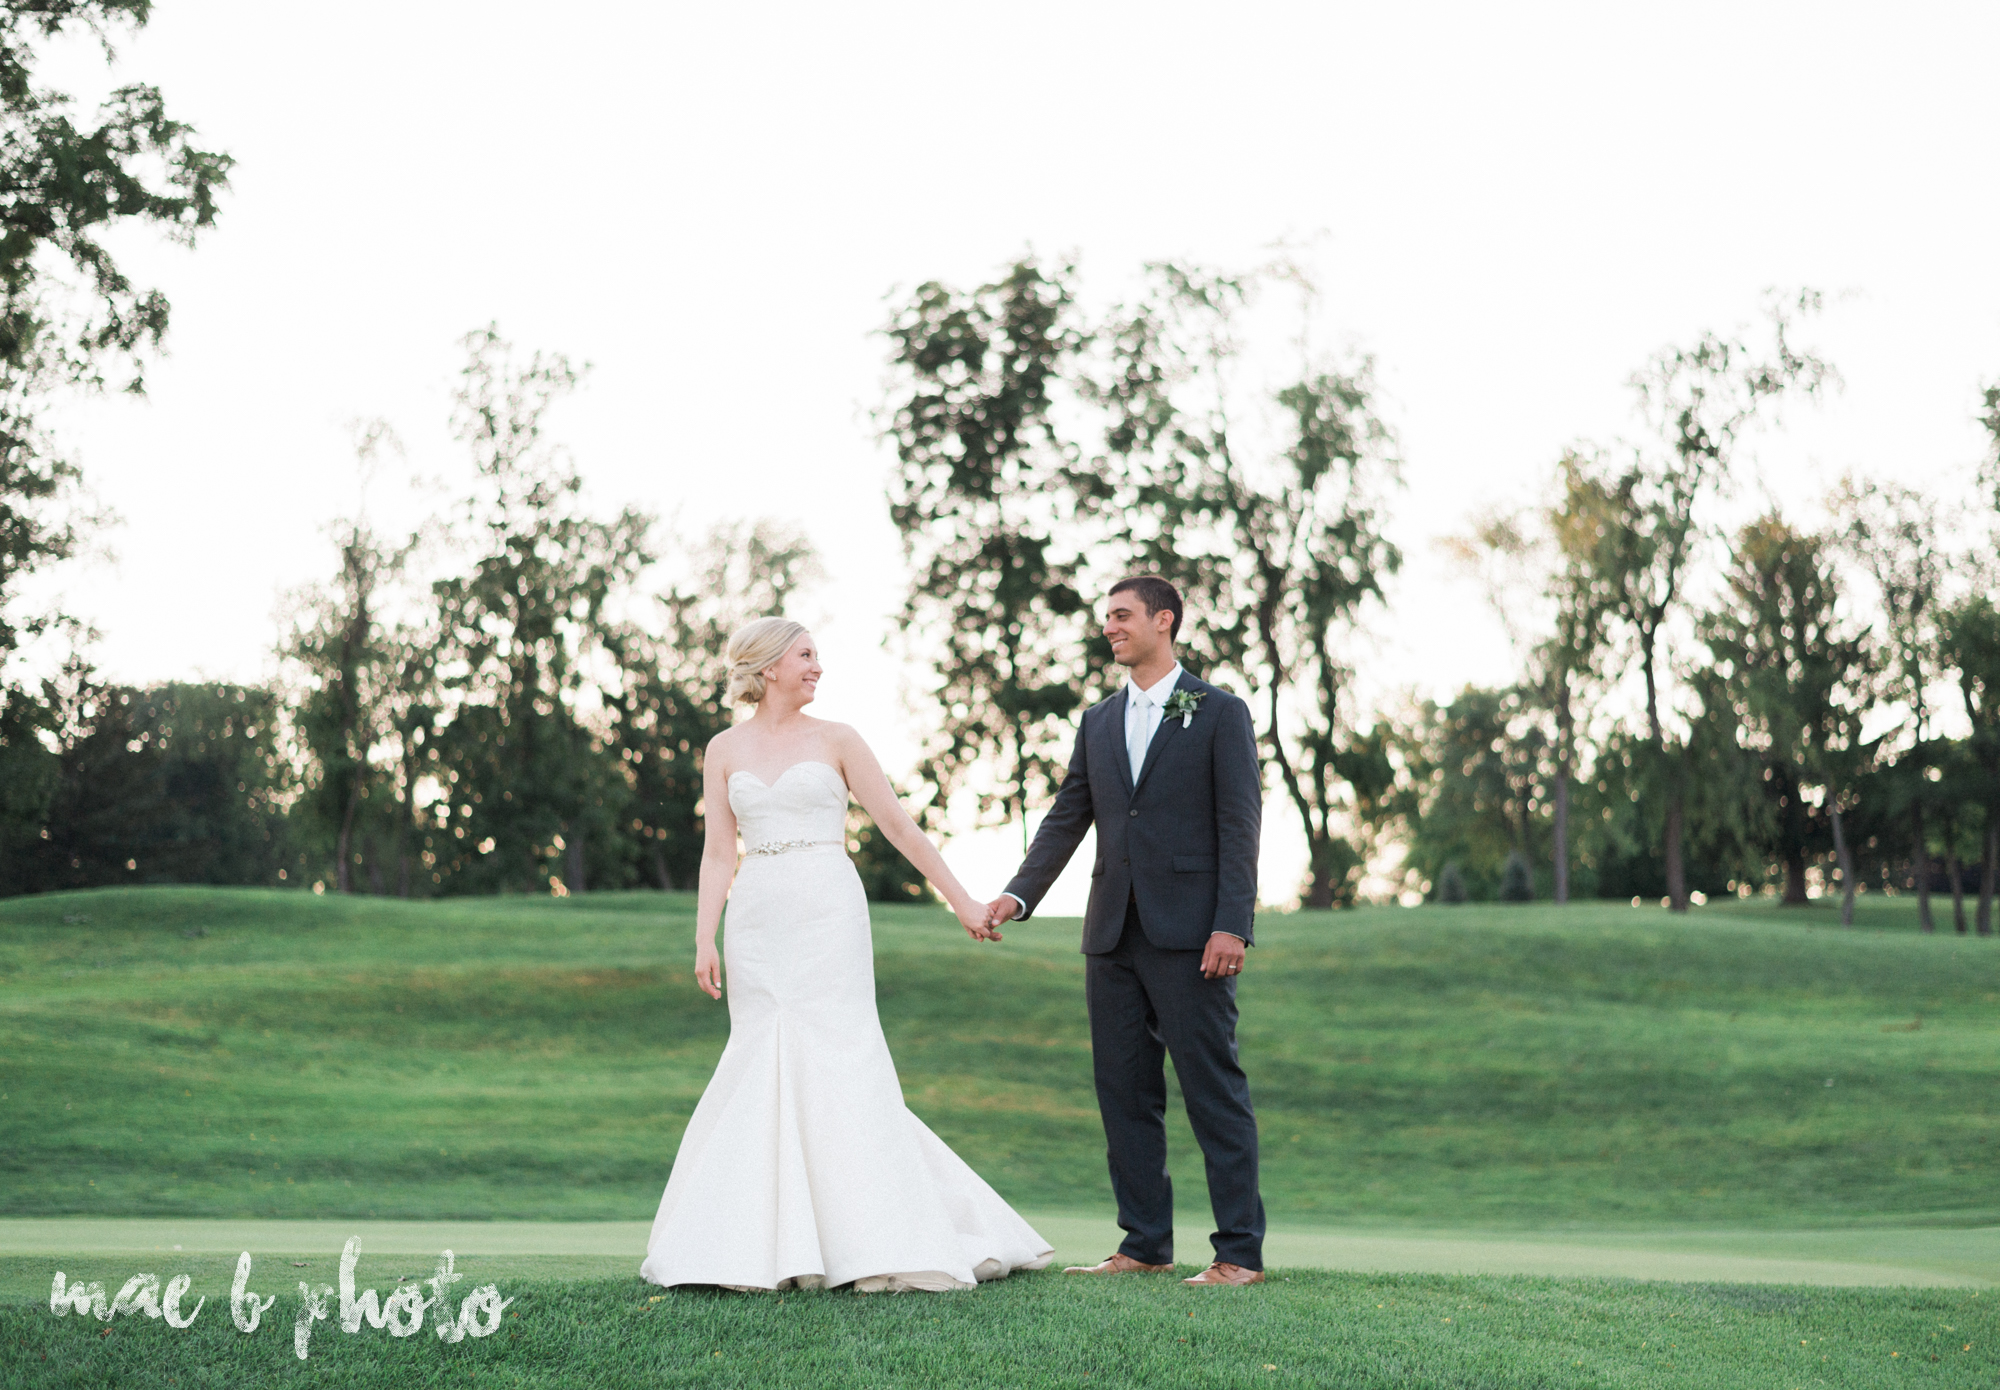 emily and michael's industrial chic summer country club wedding at the lake club in poland ohio photographed by cleveland wedding photographer mae b photo-121.jpg